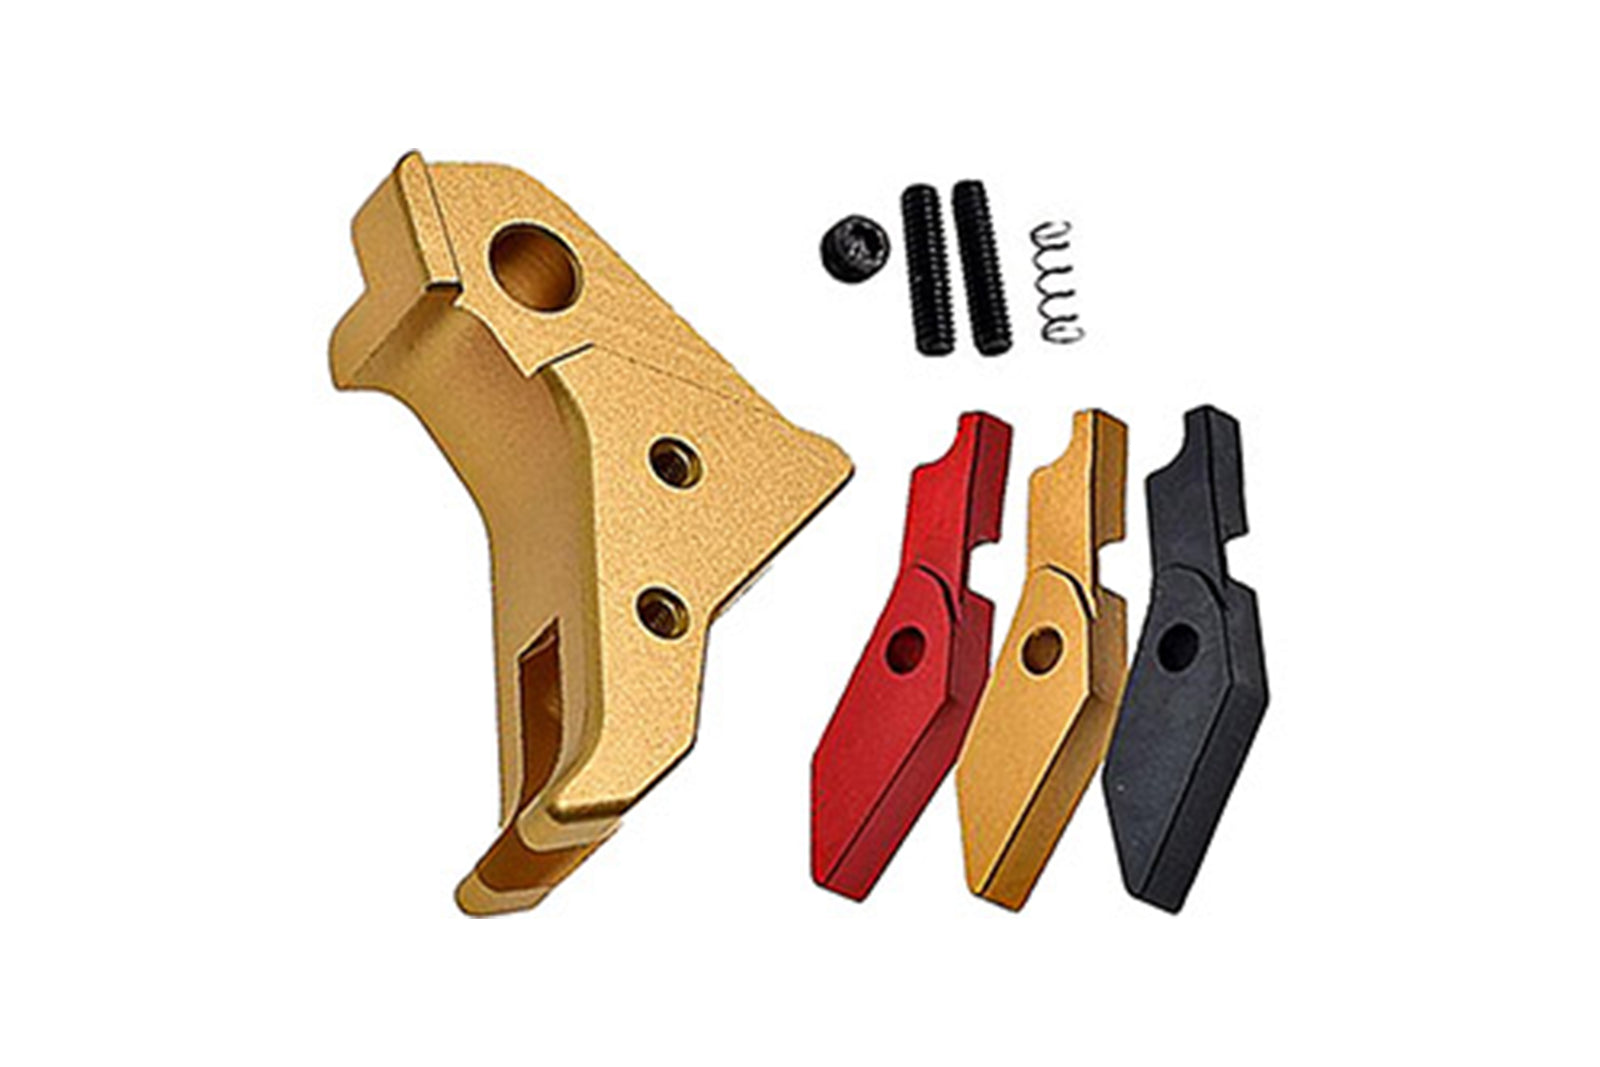 COWCOW Tactical G-Series Pistol Trigger - Gold